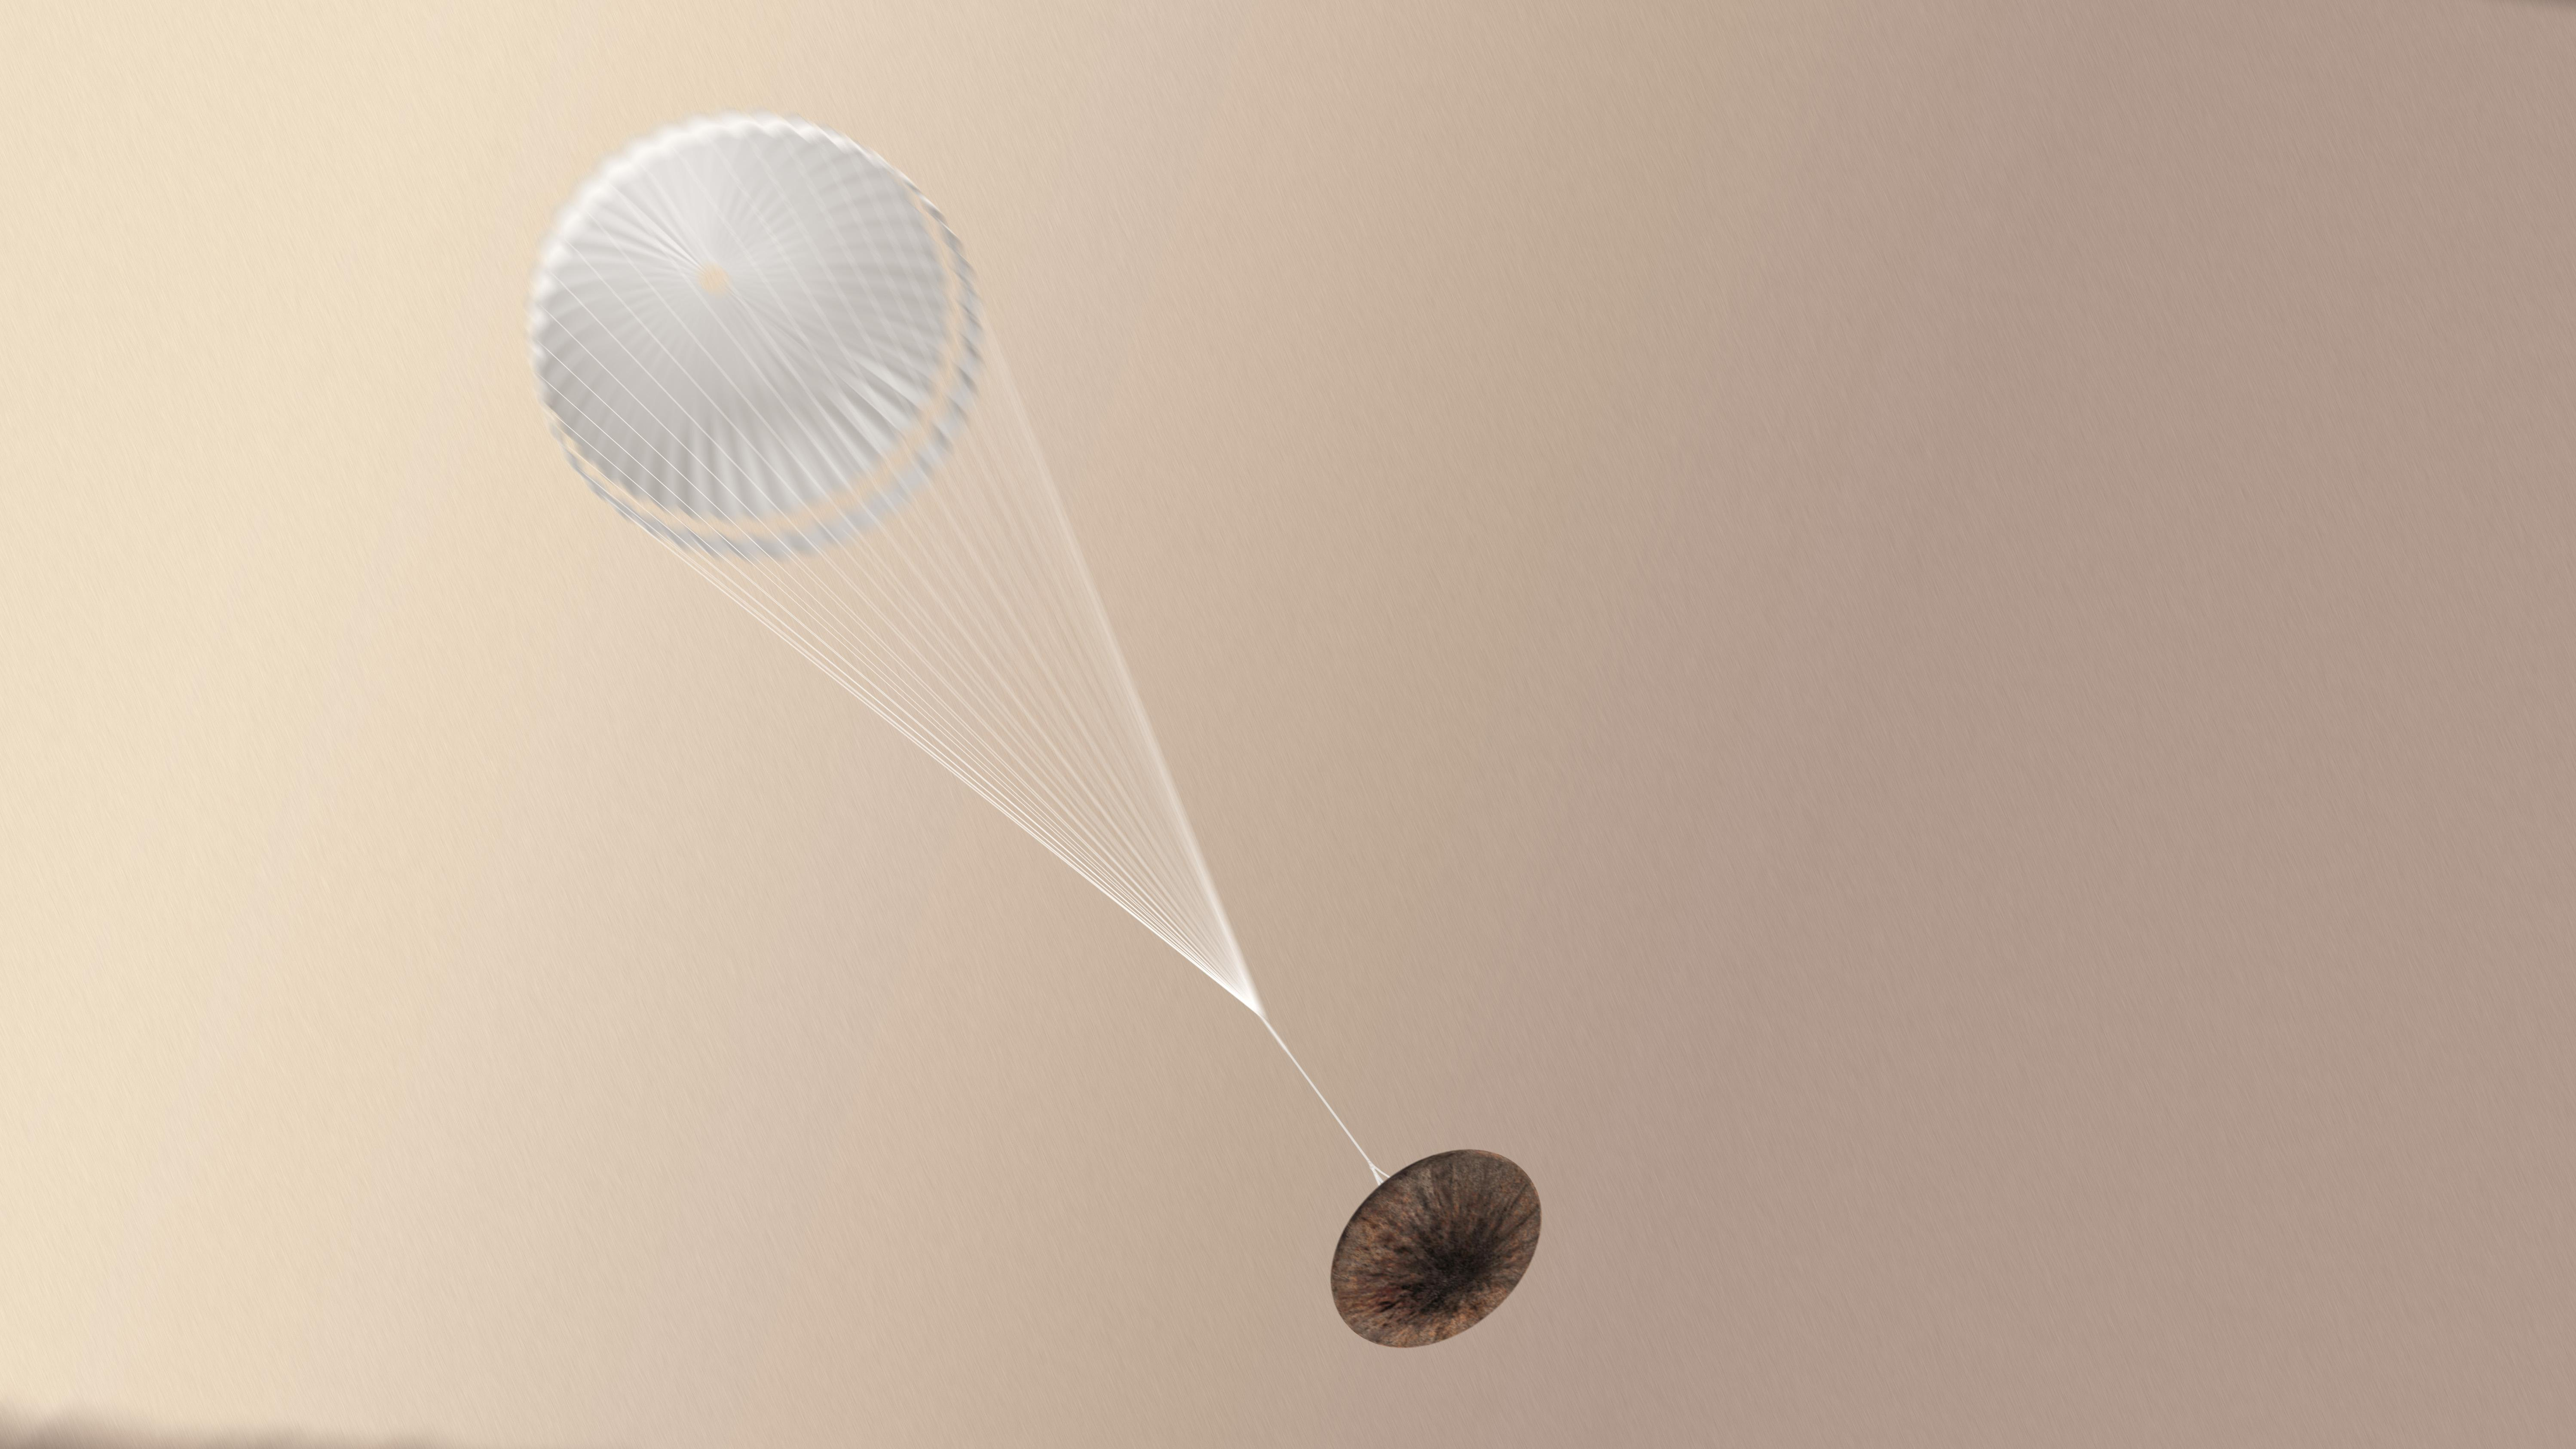 schiaparelli_with_parachute_deployed.jpg